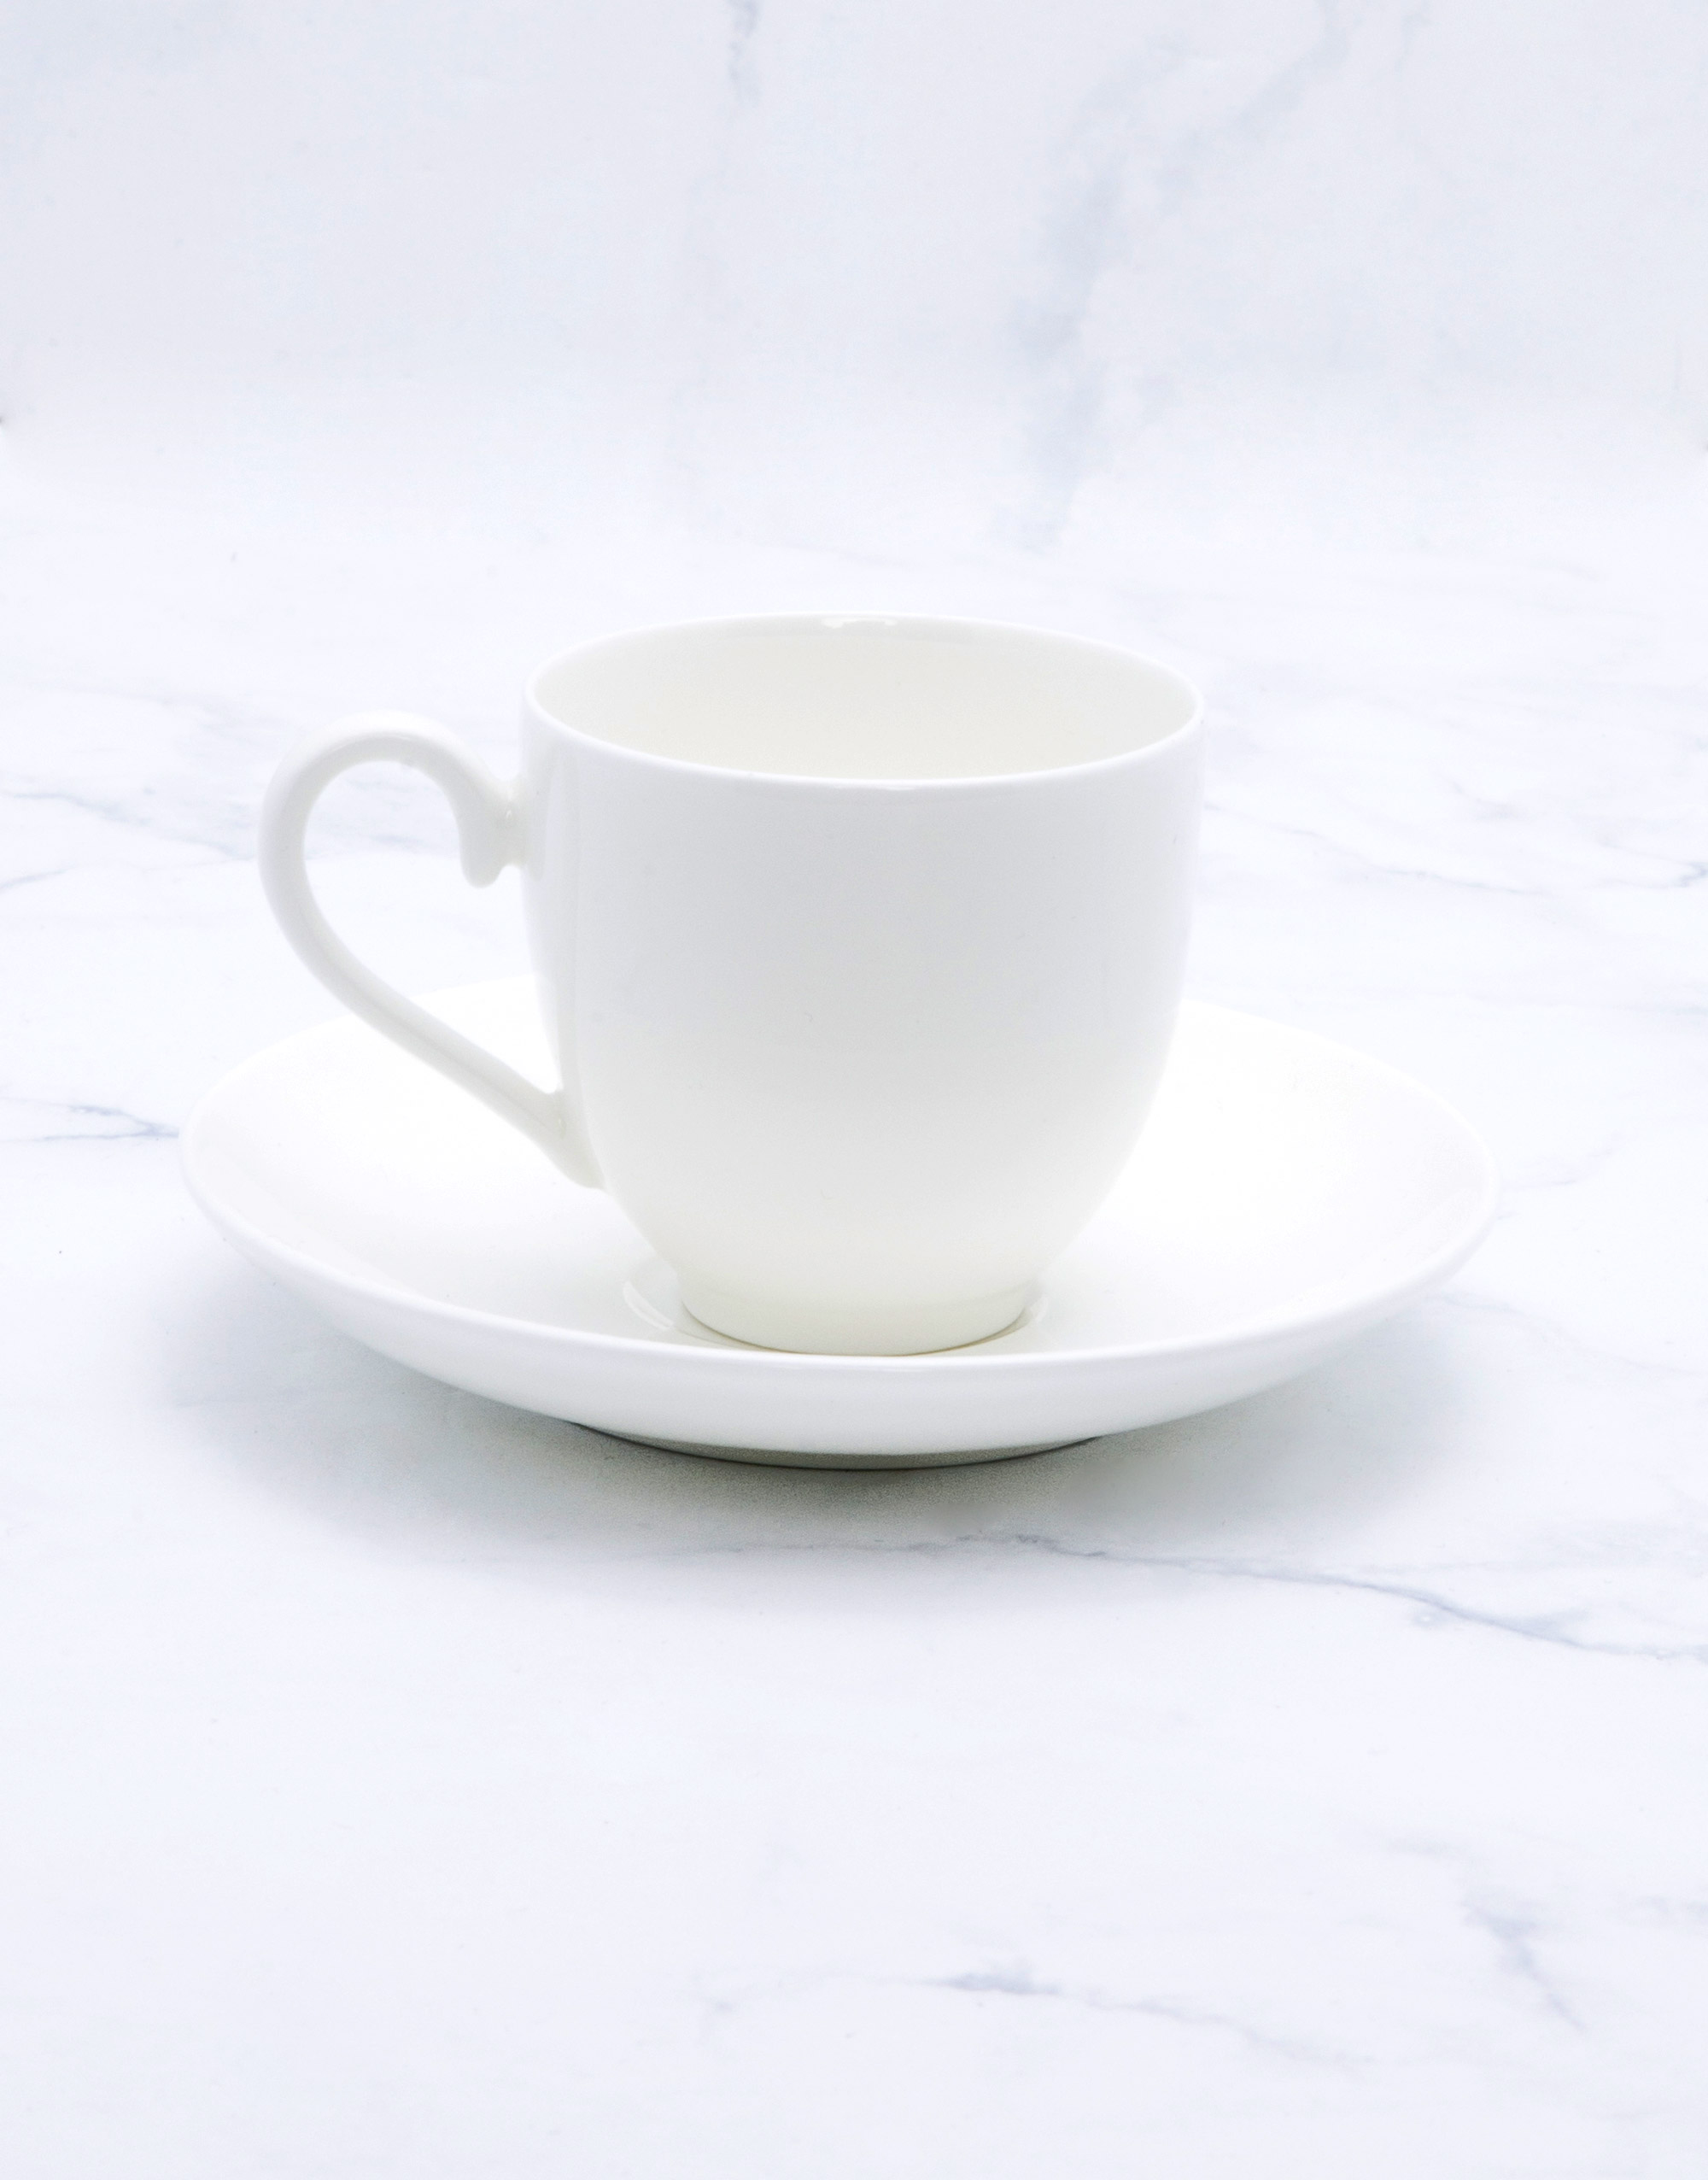 Villeroy & Boch Royal Espresso Cup & saucer | CHIC RÈGIME